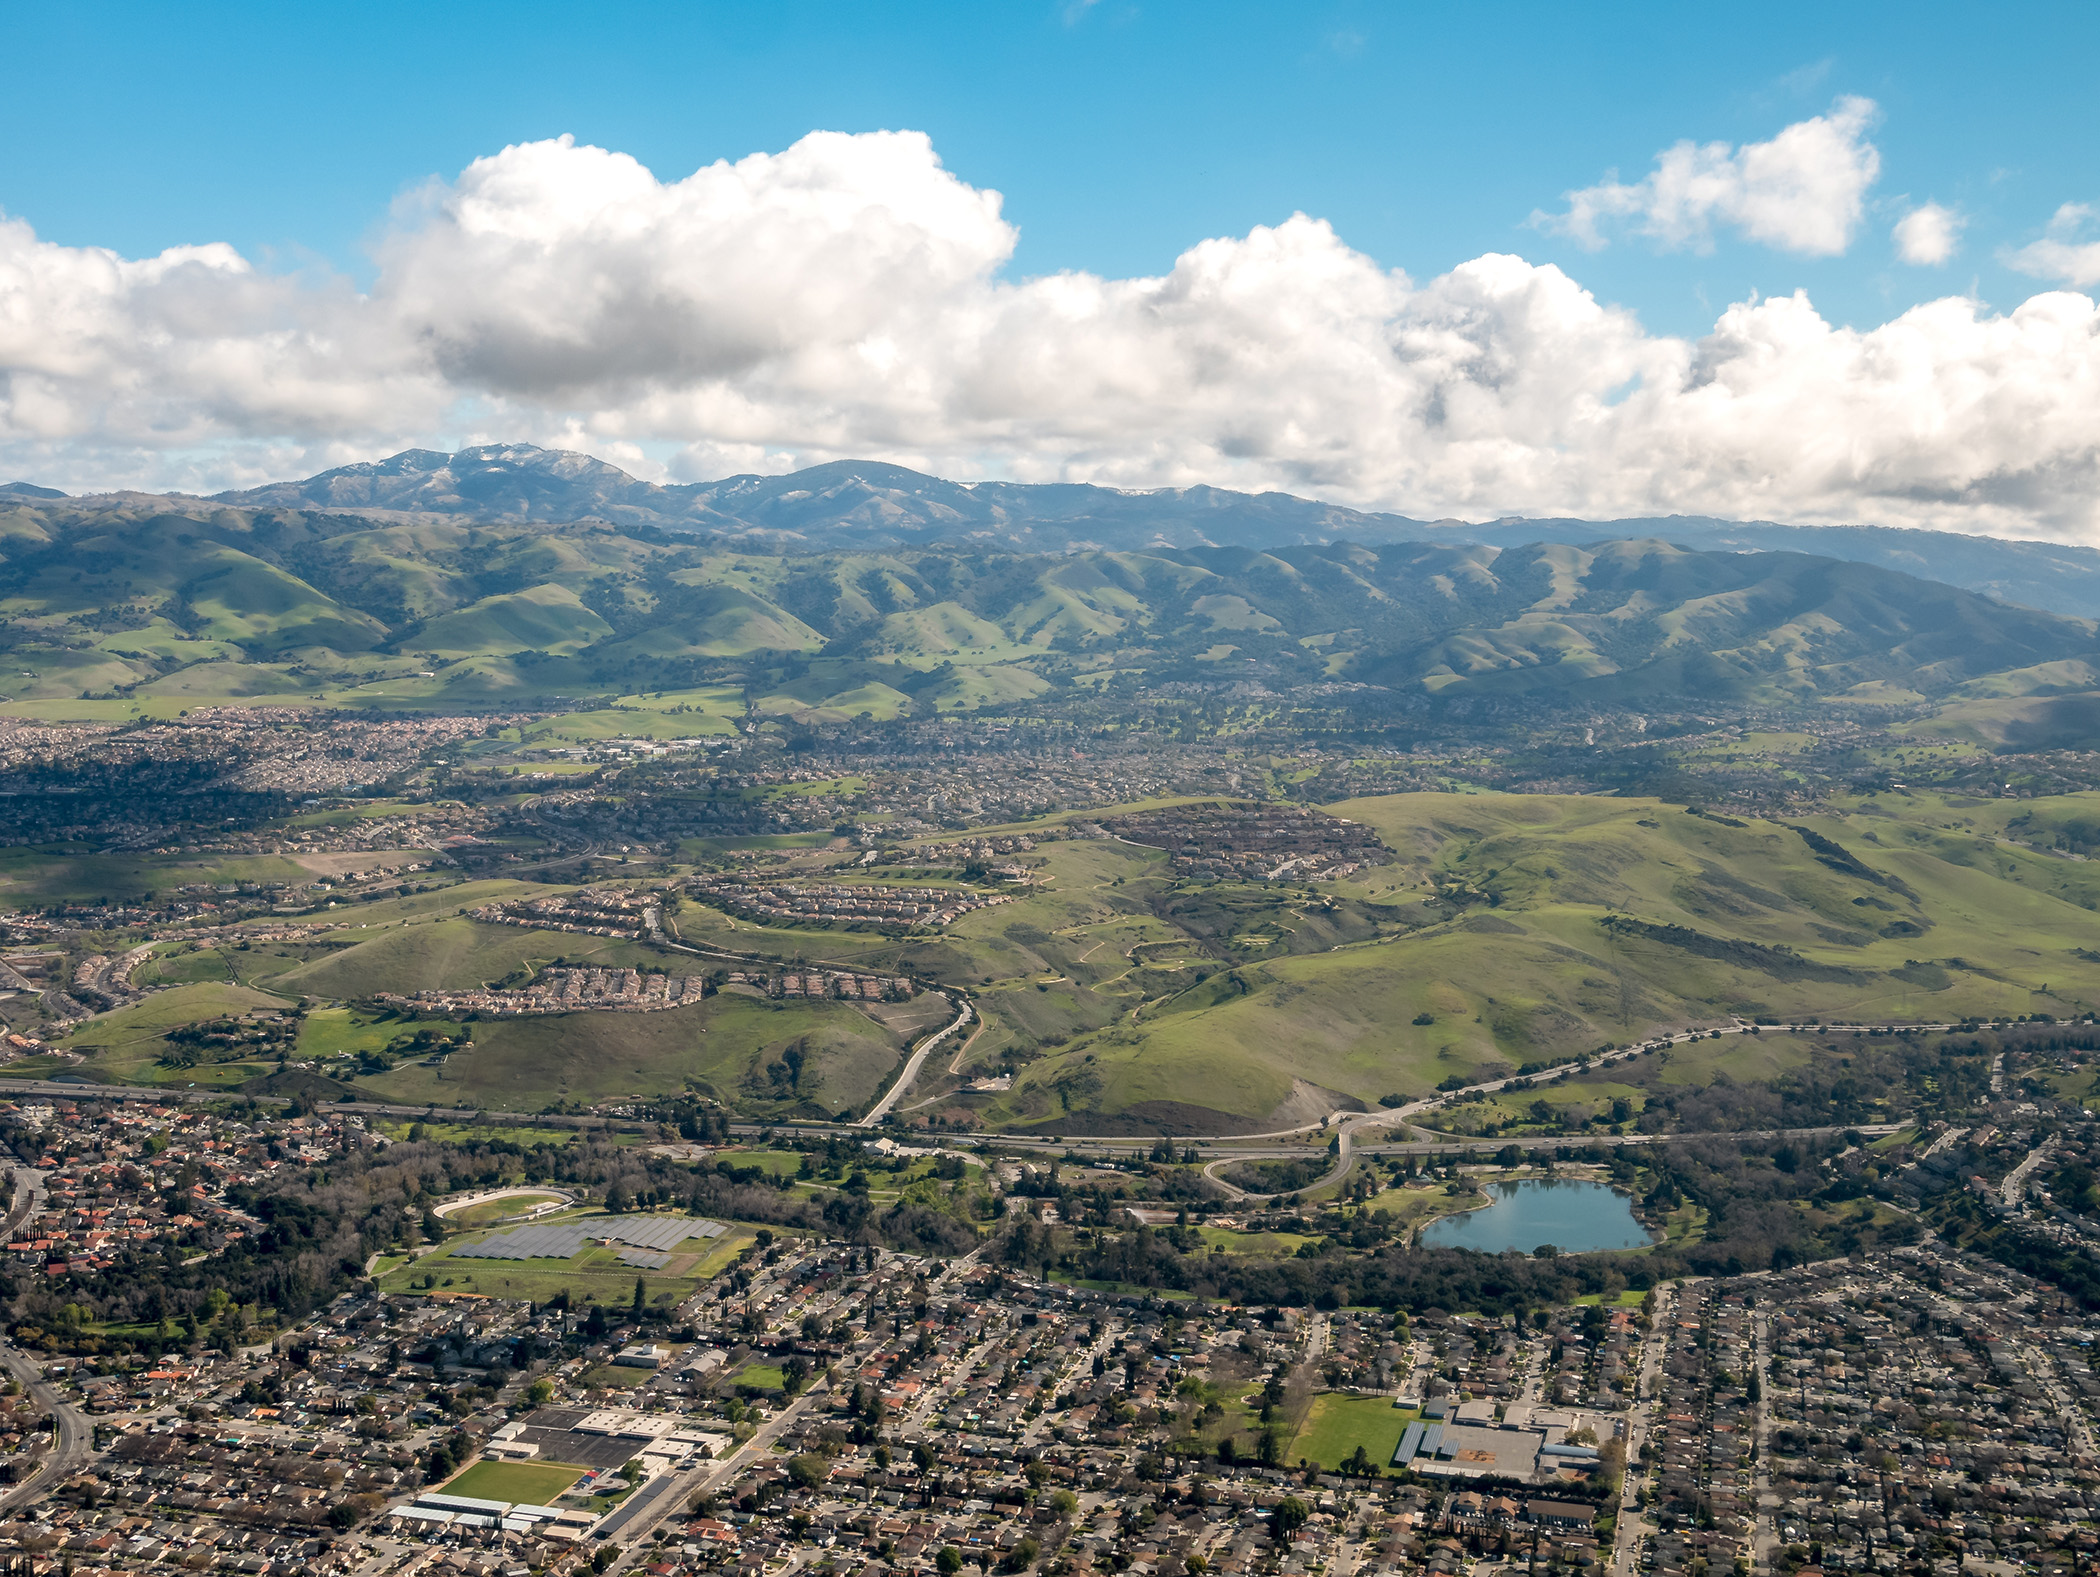 Aerial View of Suburbs of San Jose California From Airplane